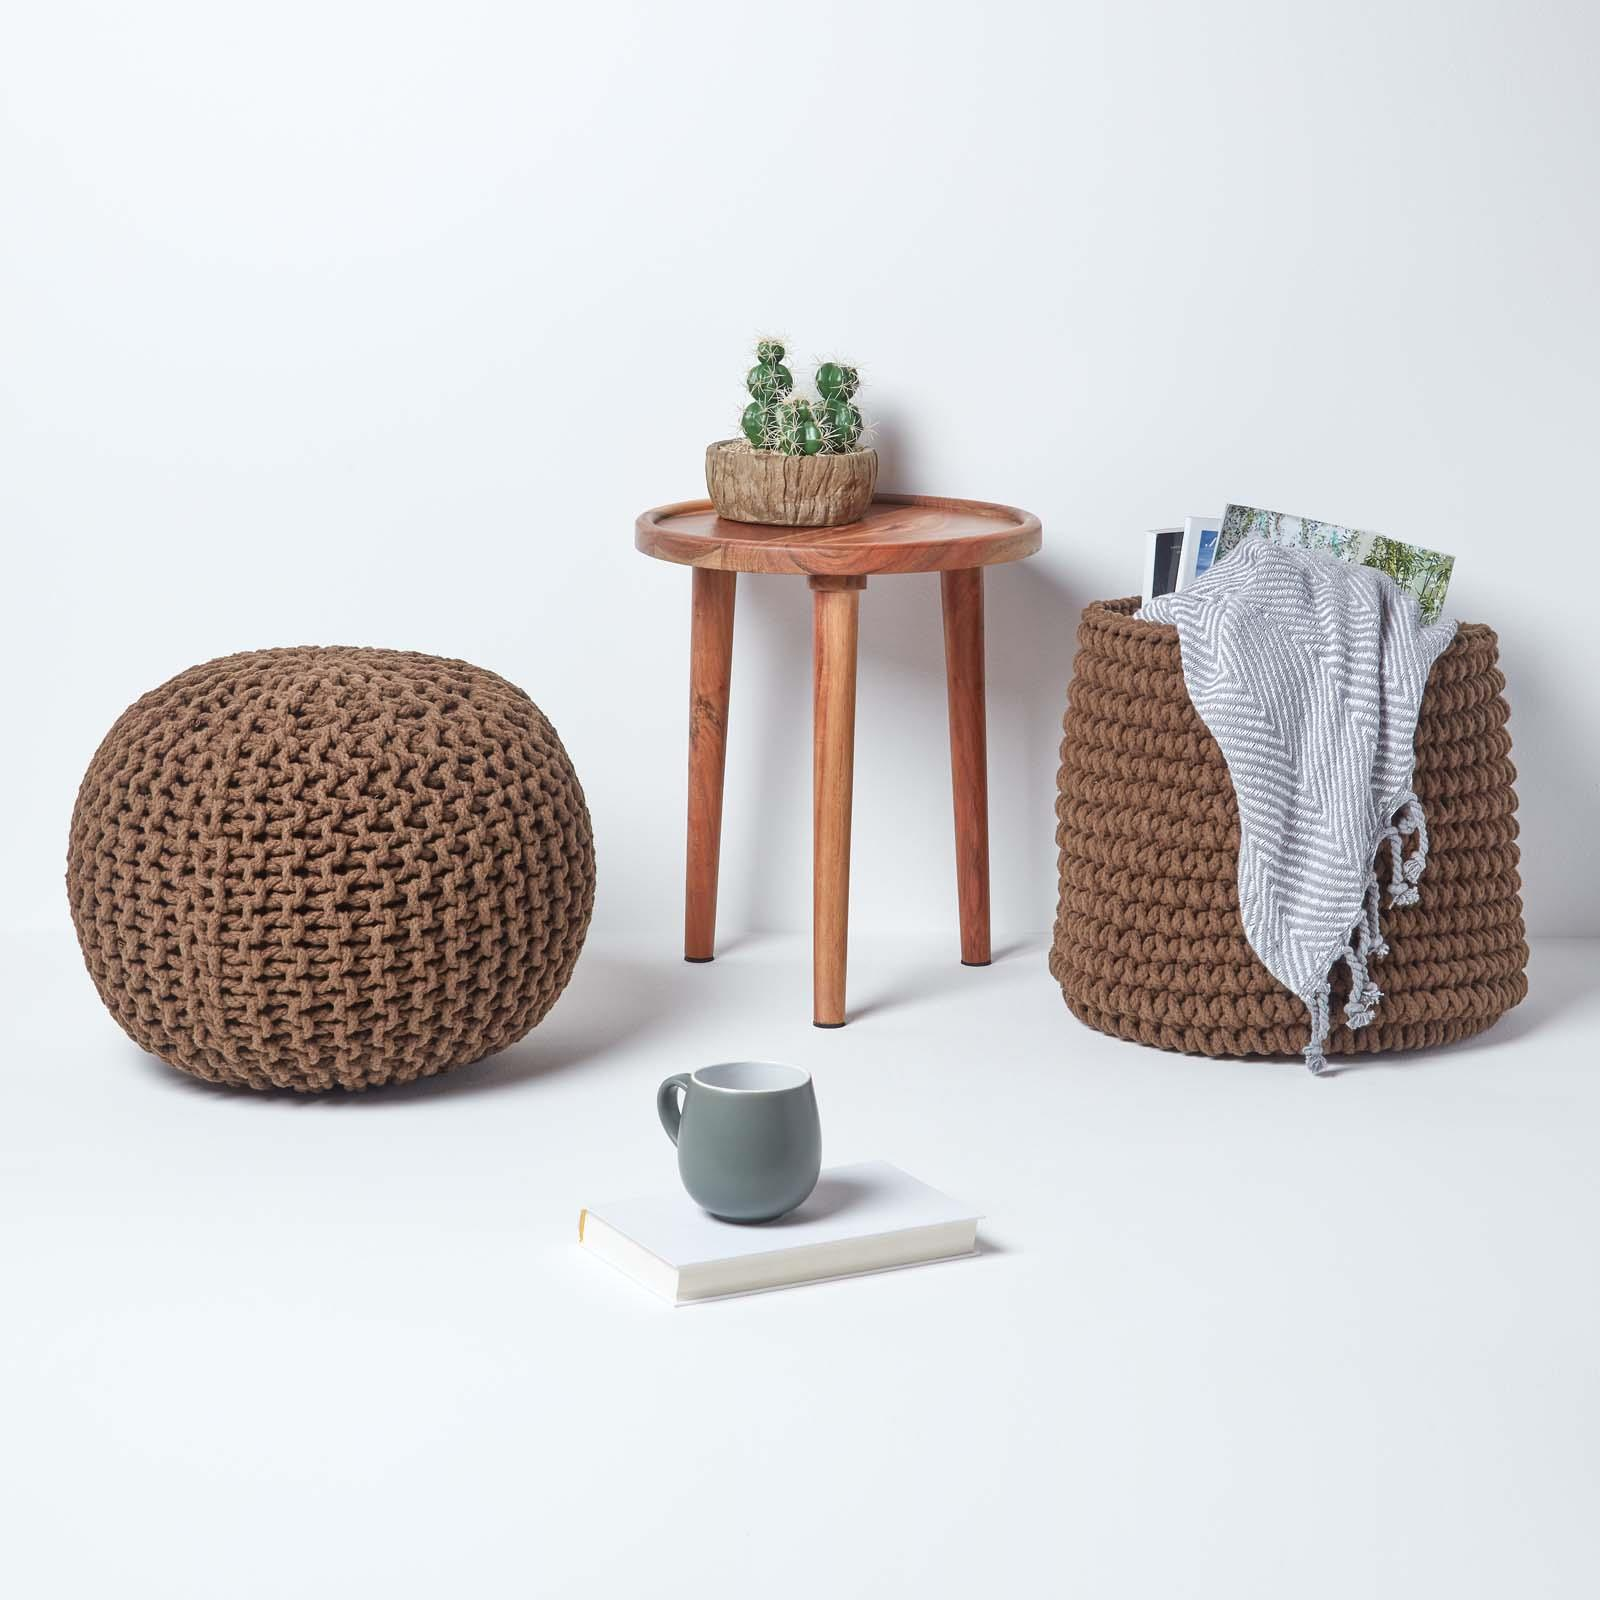 Hand-Knitted-100-Cotton-Pouffes-Round-Sphere-Or-Cube-Square-Chunky-Footstools thumbnail 38